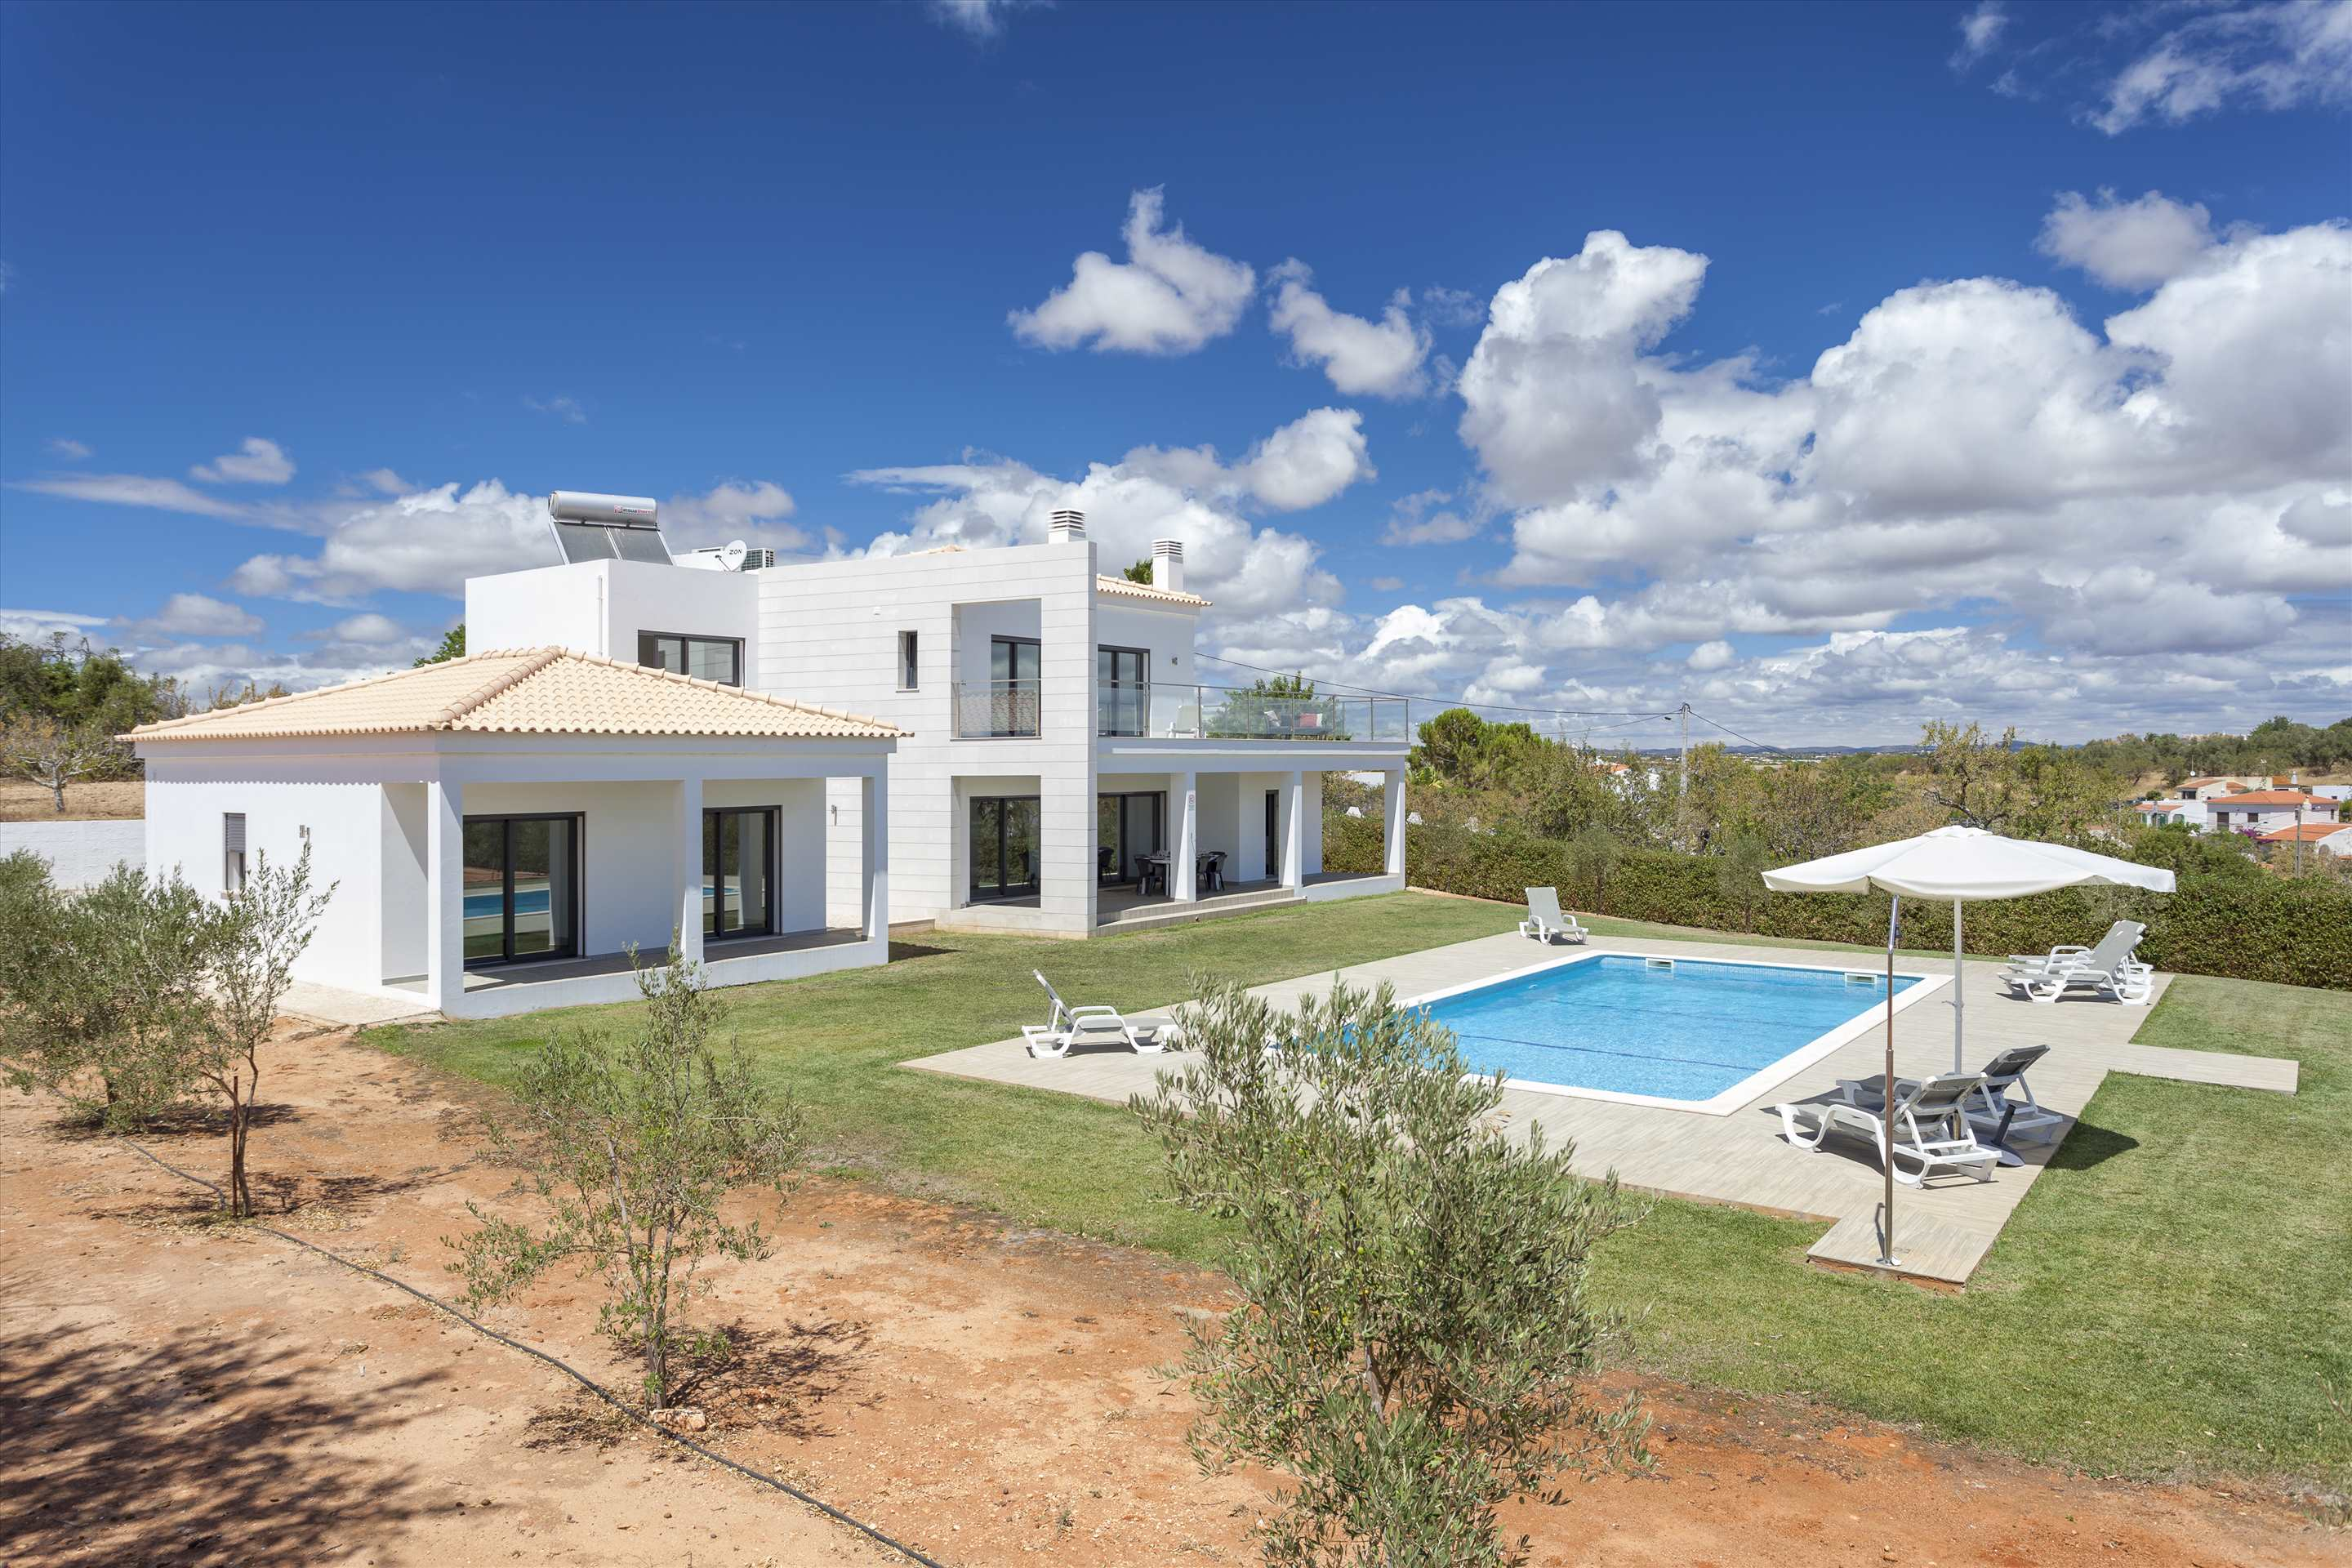 Casa Joana, 4 bedroom villa in Carvoeiro Area, Algarve Photo #1